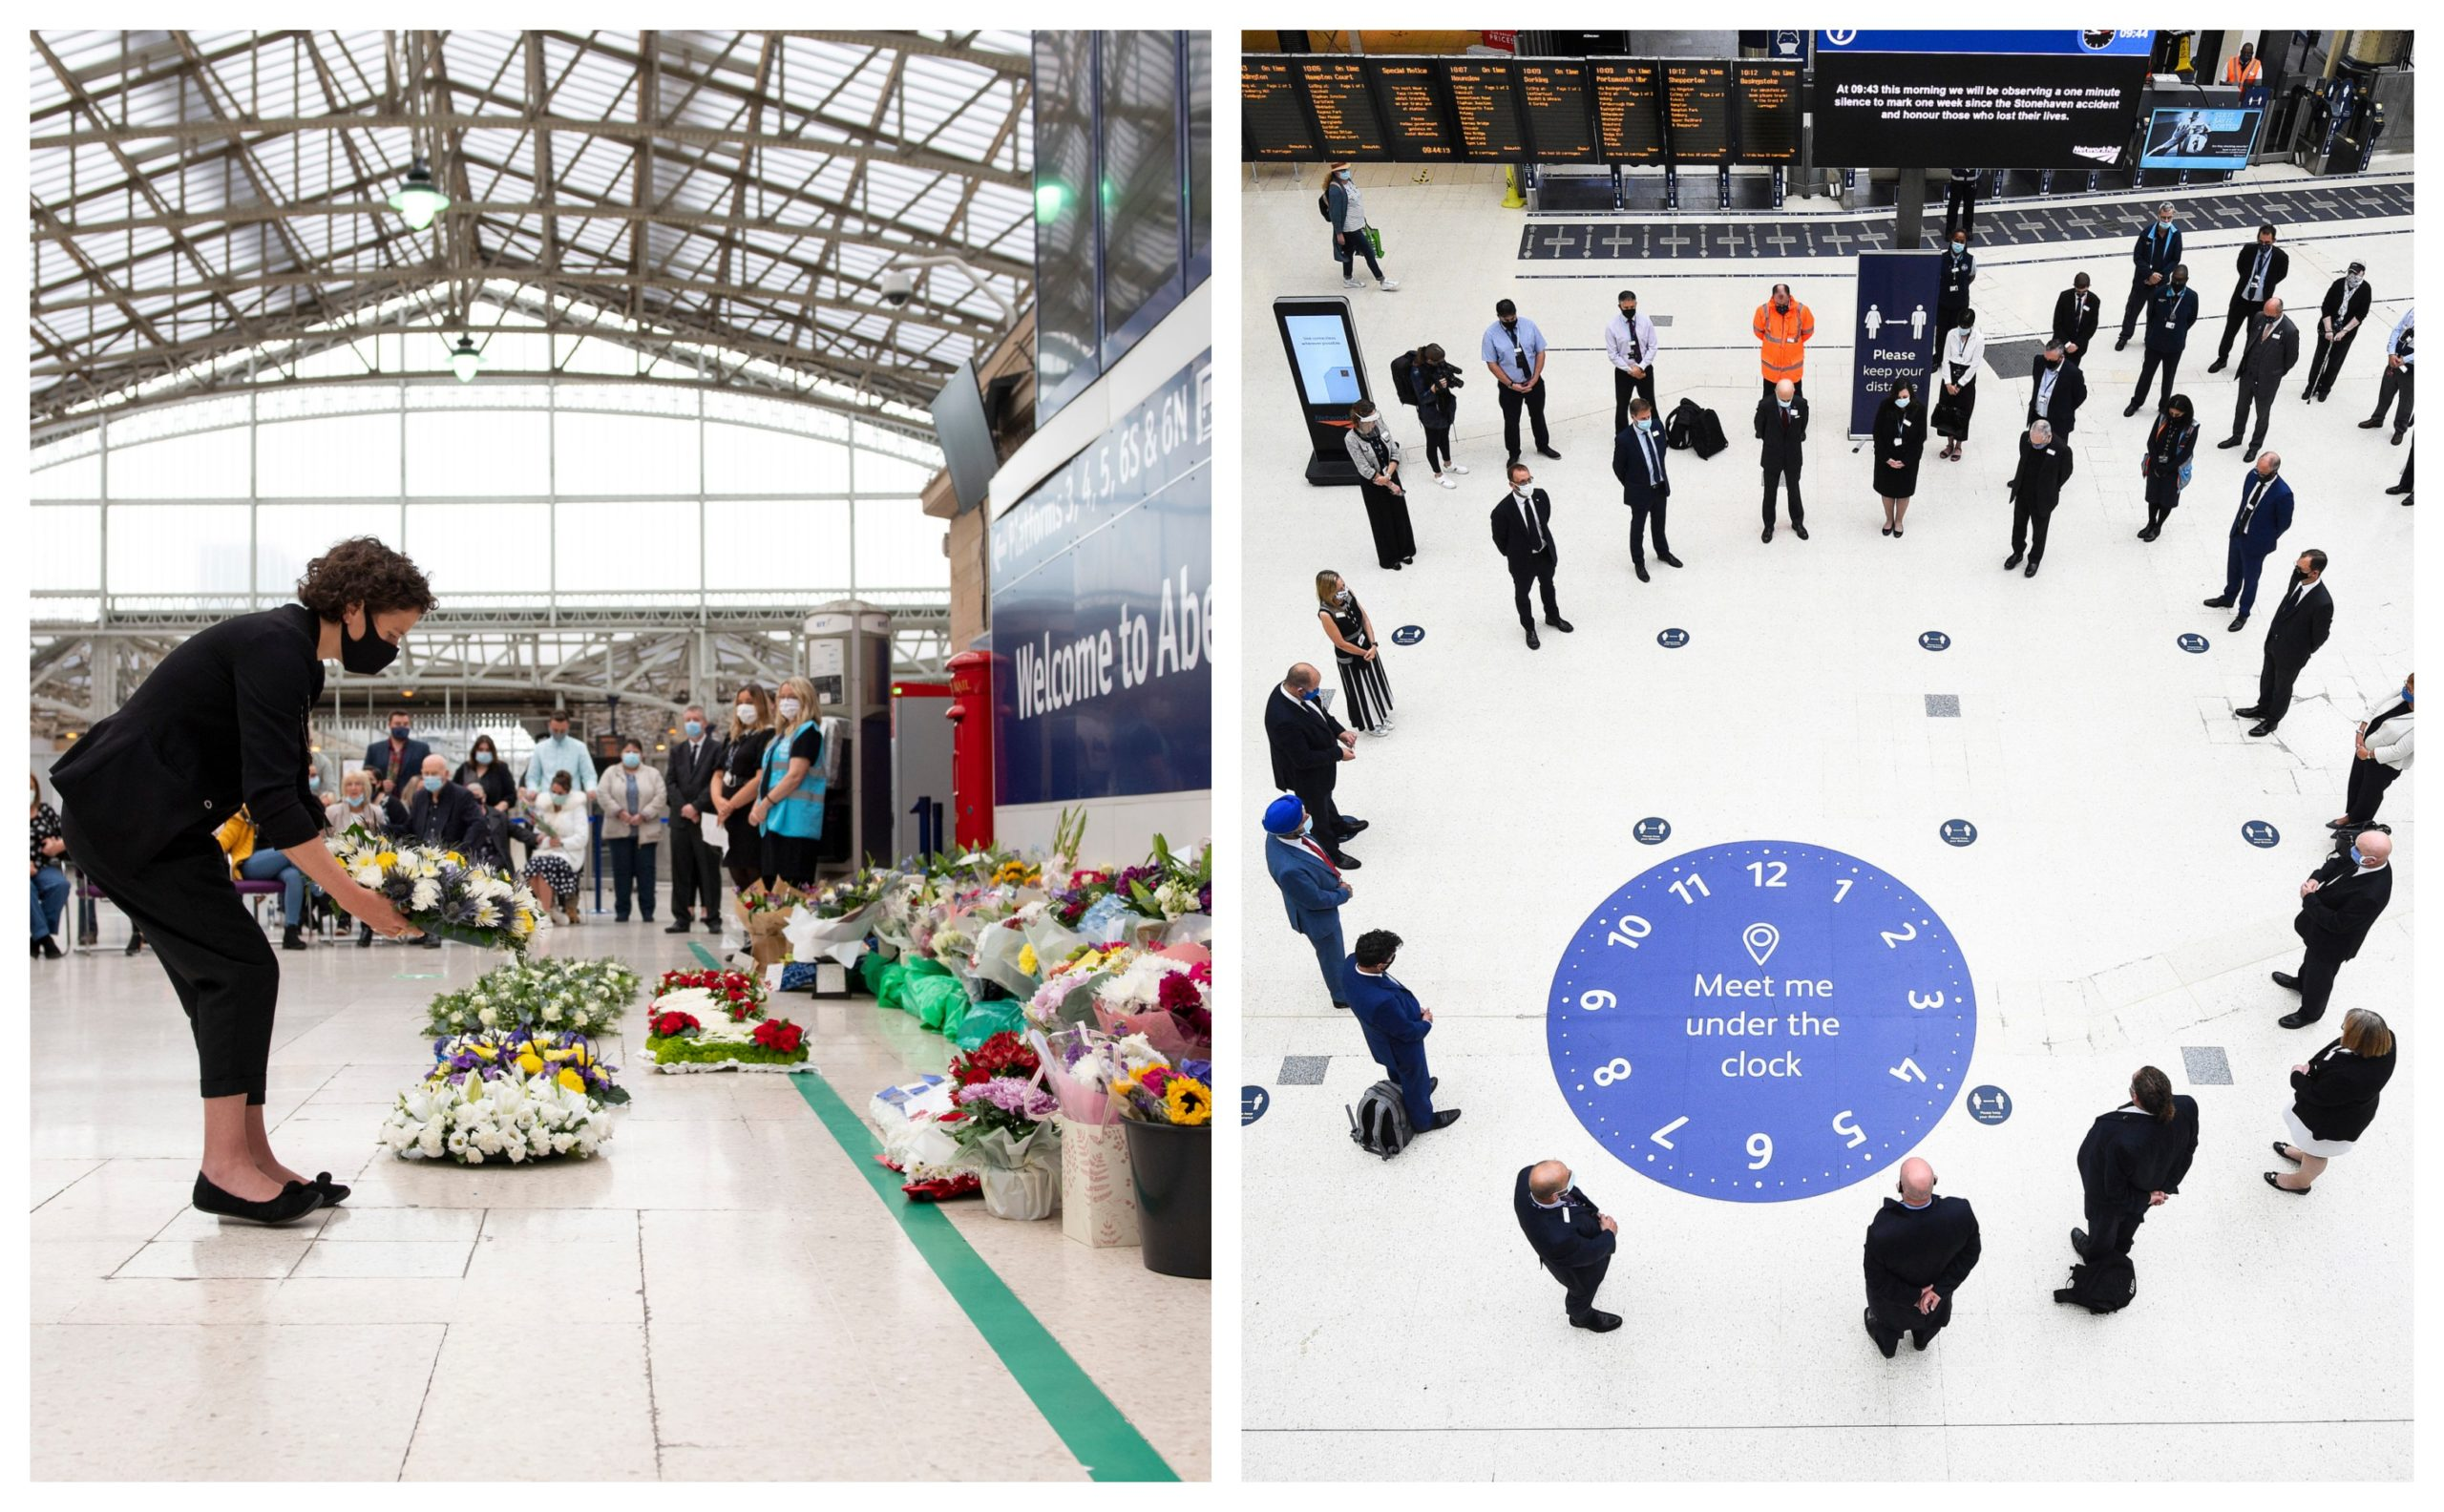 Tributes being paid to the victims of the Stonehaven rail tragedy in Aberdeen (left) and Waterloo Station (right).